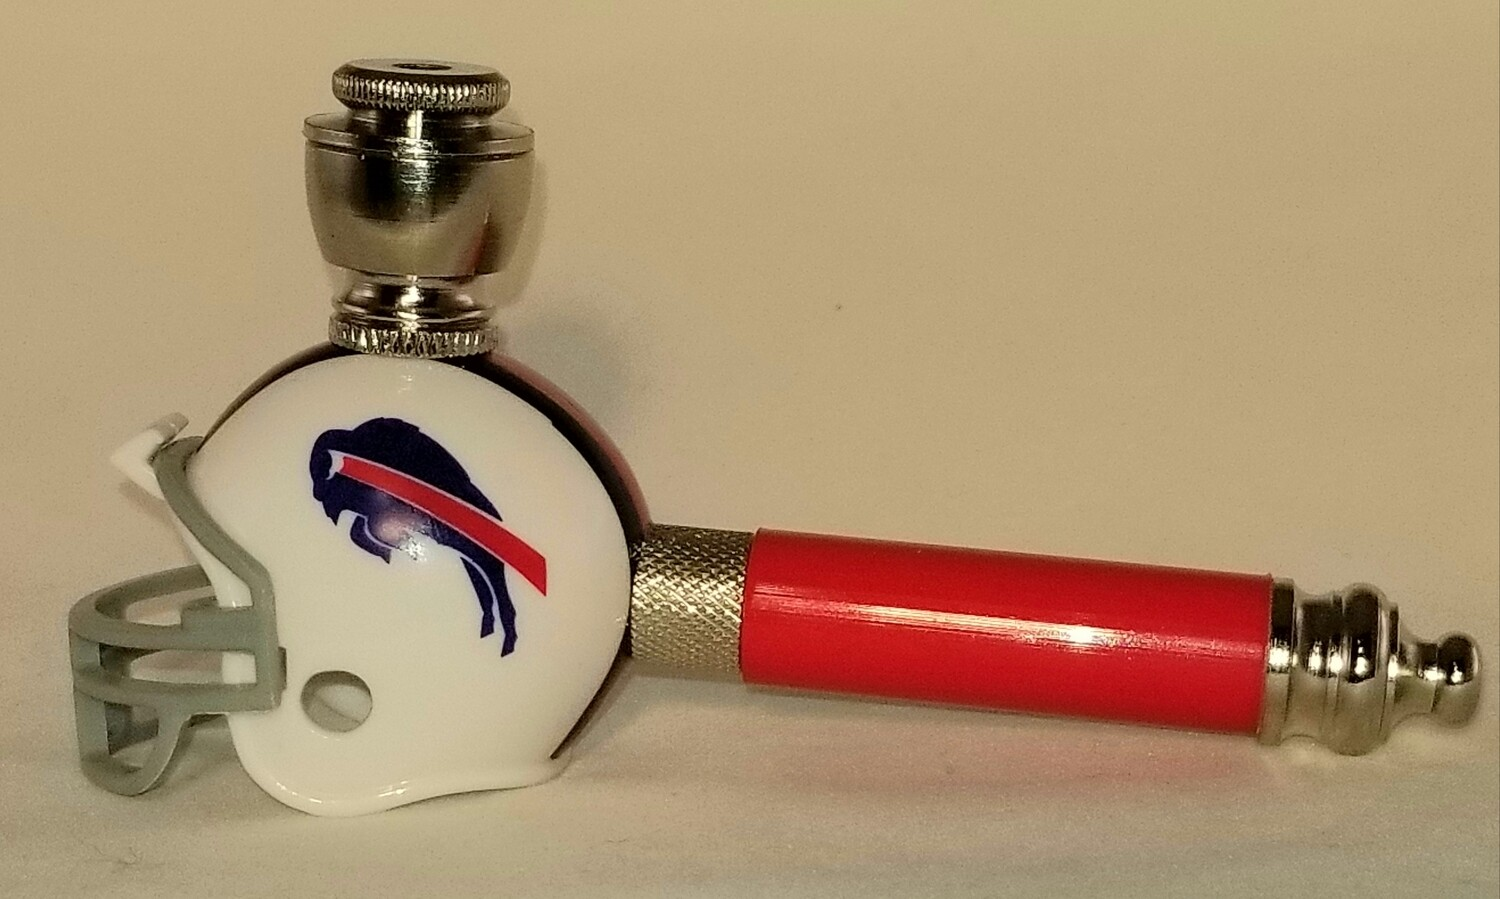 BUFFALO BILLS NFL FOOTBALL HELMET SMOKING PIPE Long Stem/Nickel/Red